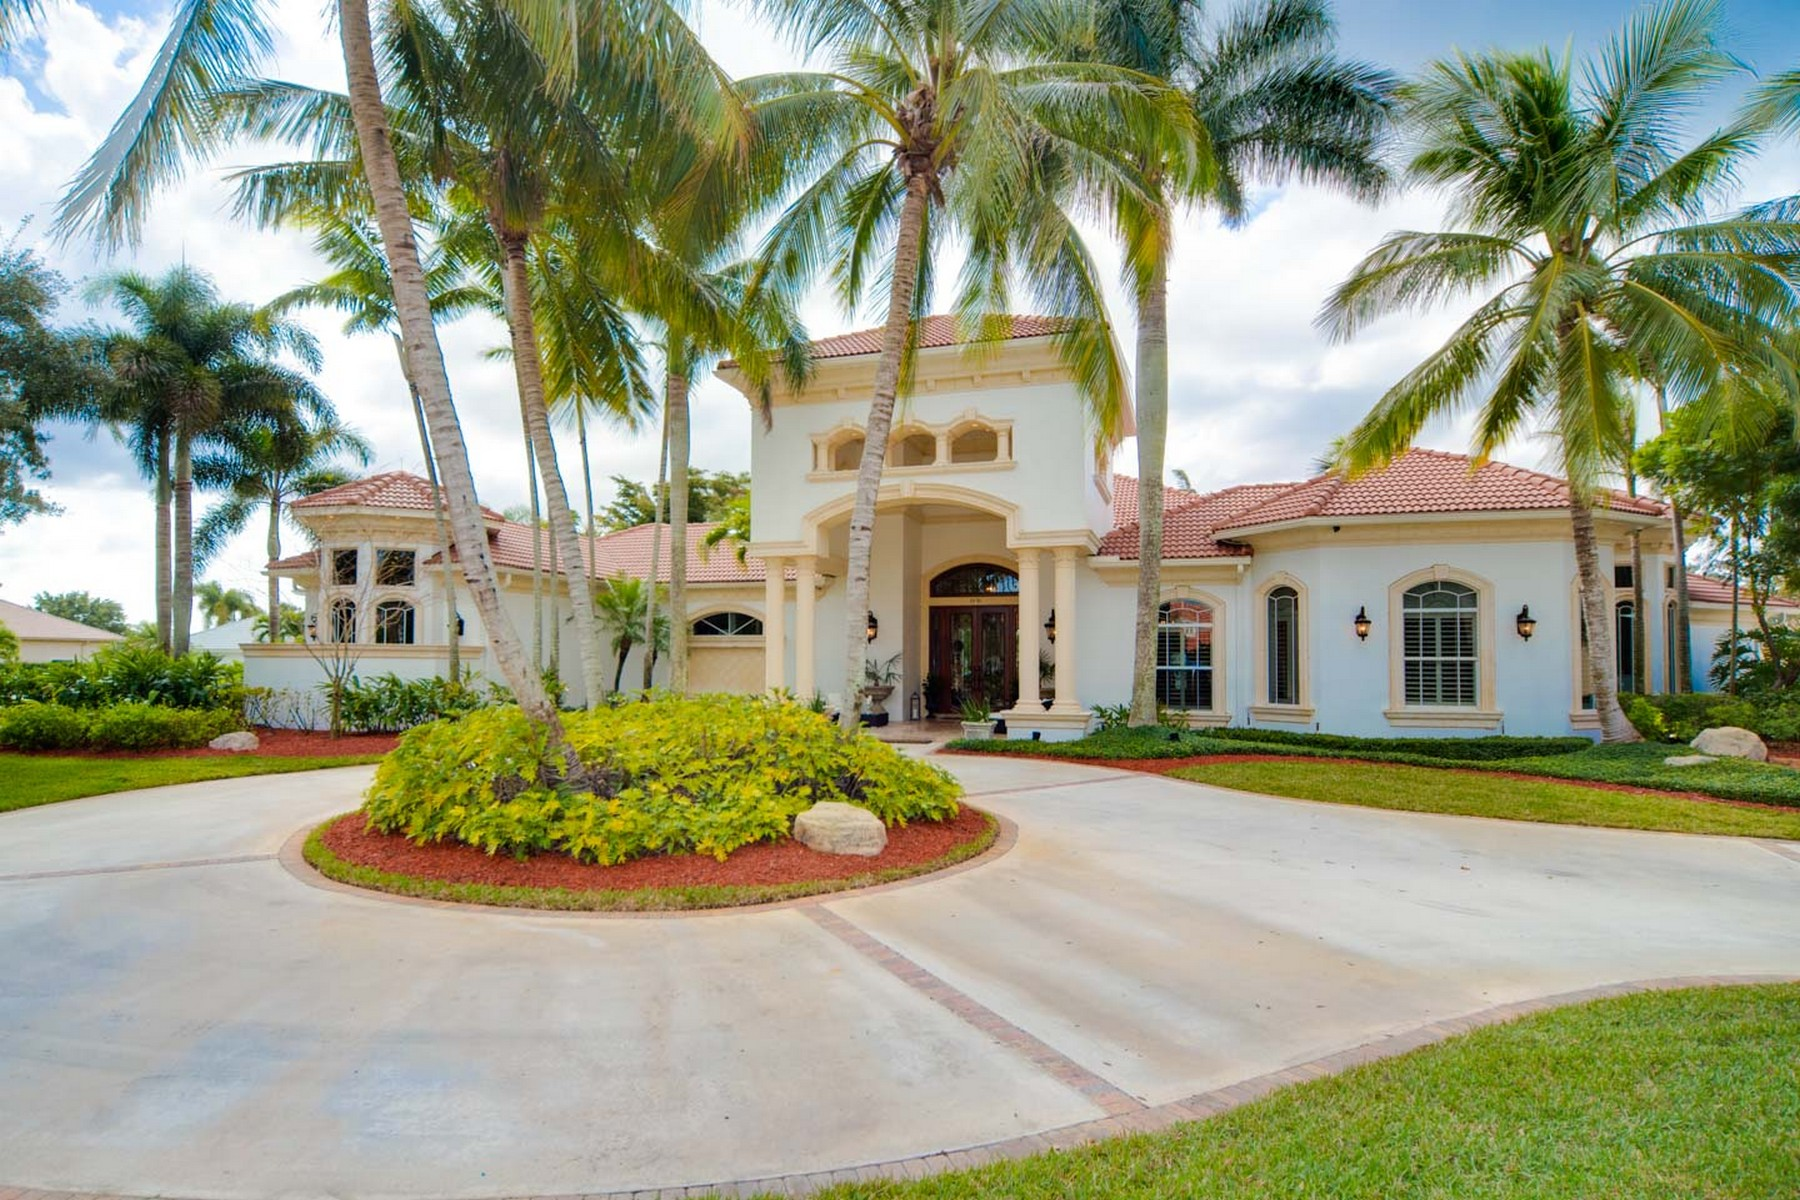 Single Family Home for Sale at 2095 Windsock Way 2095 Windsock Way Wellington, Florida 33414 United States